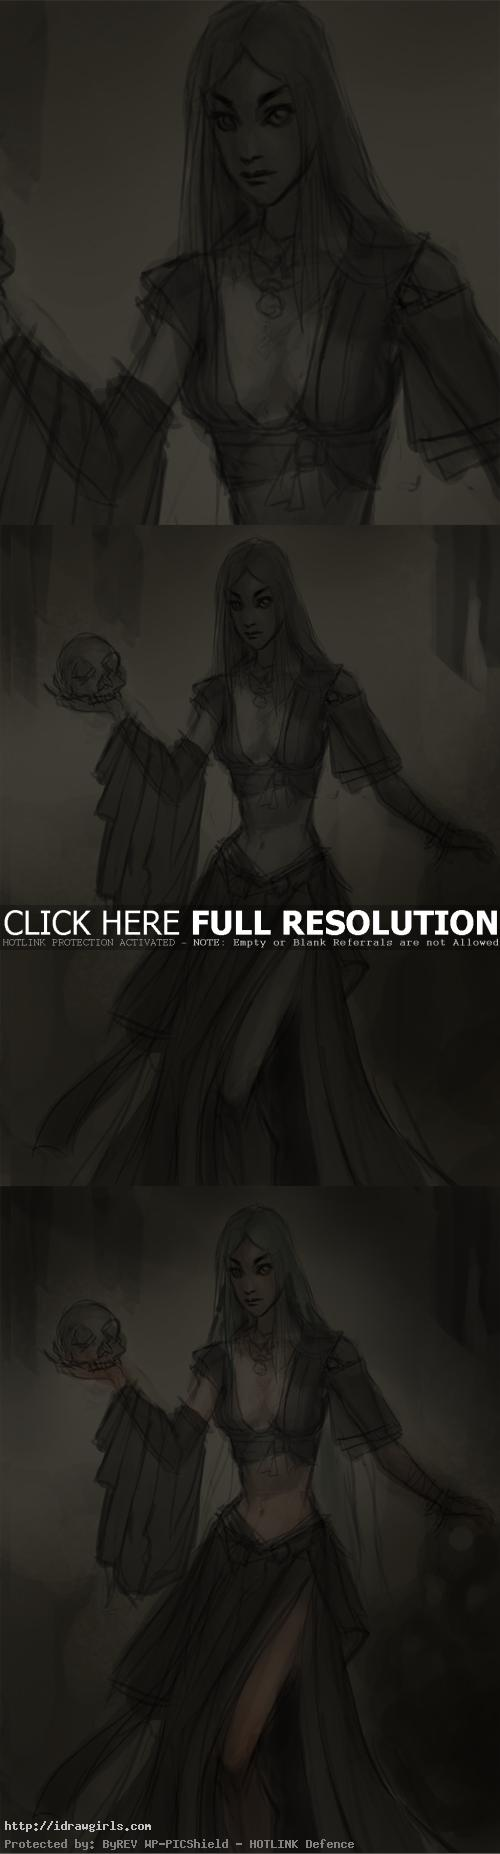 Drawing tutorial warlock woman